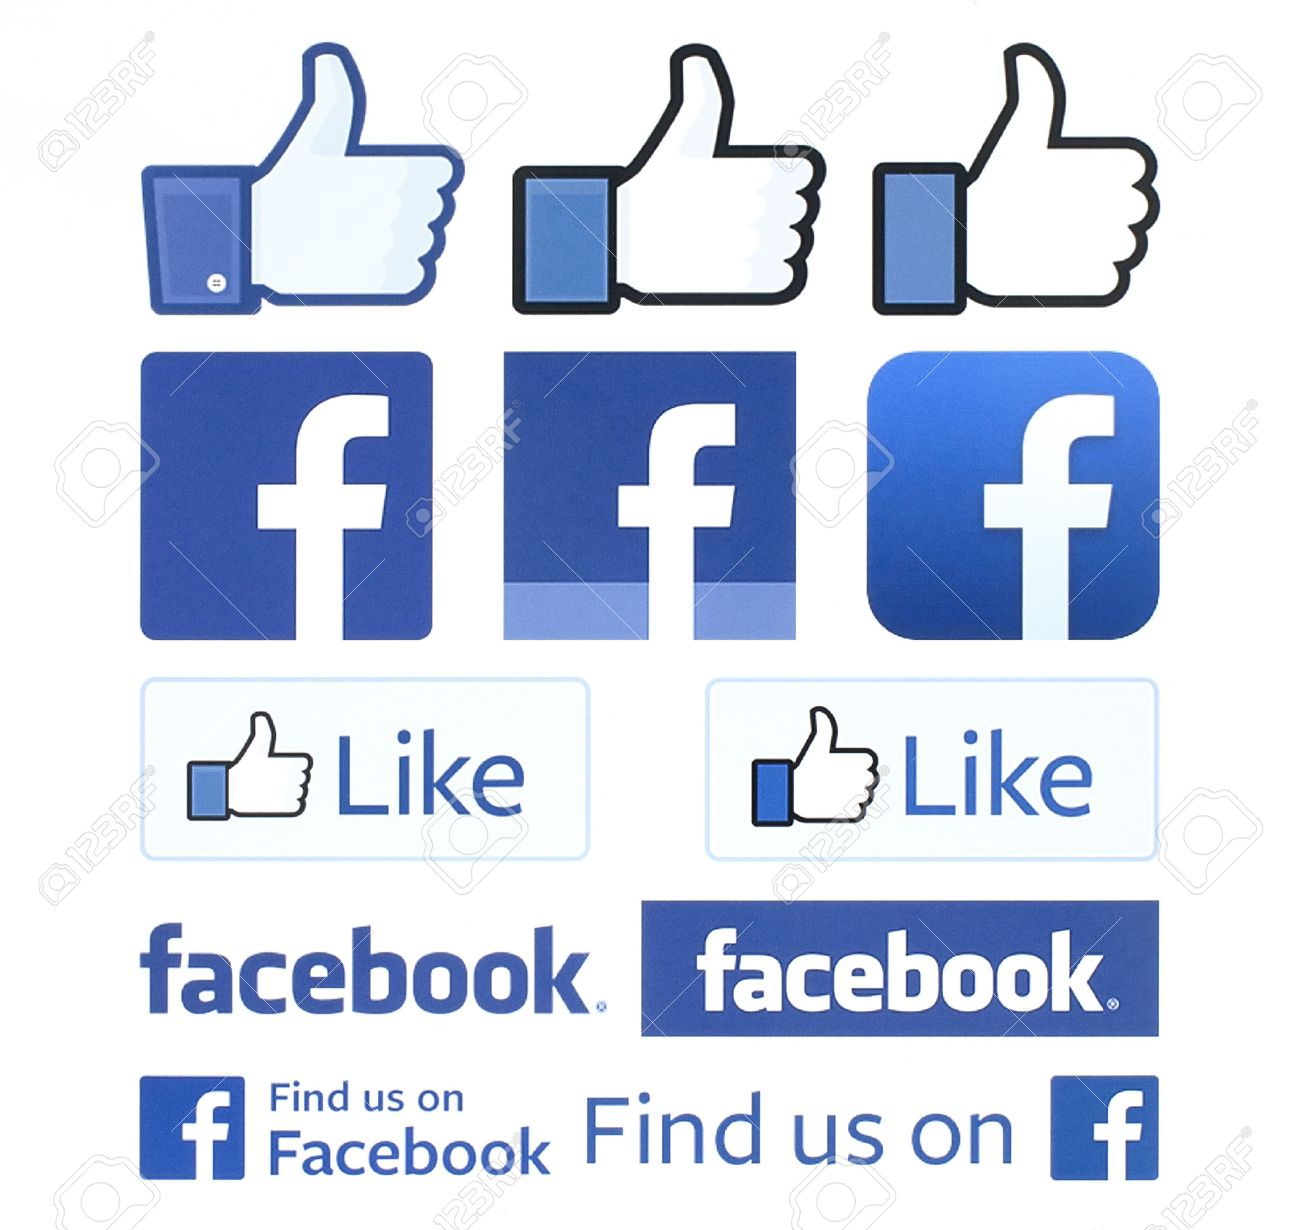 Kiev, Ukraine - February 4, 2016: Facebook logos and thumbs up printed on white paper. Facebook is a well-known social networking service. - 52114531